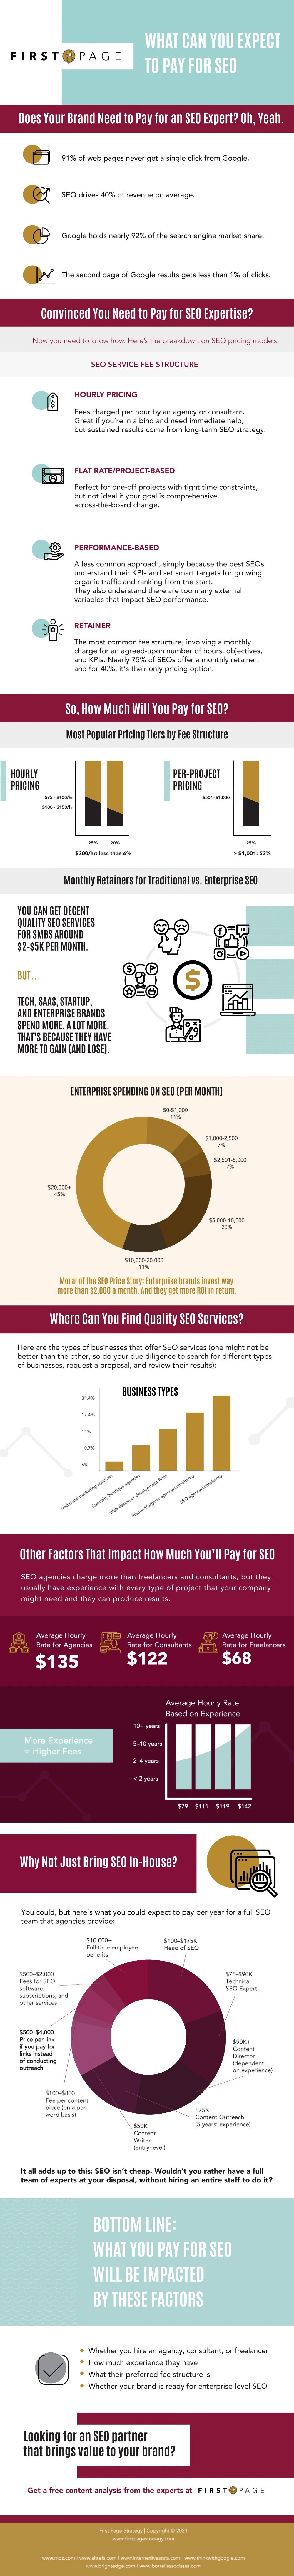 Budget For a Successful SEO Strategy